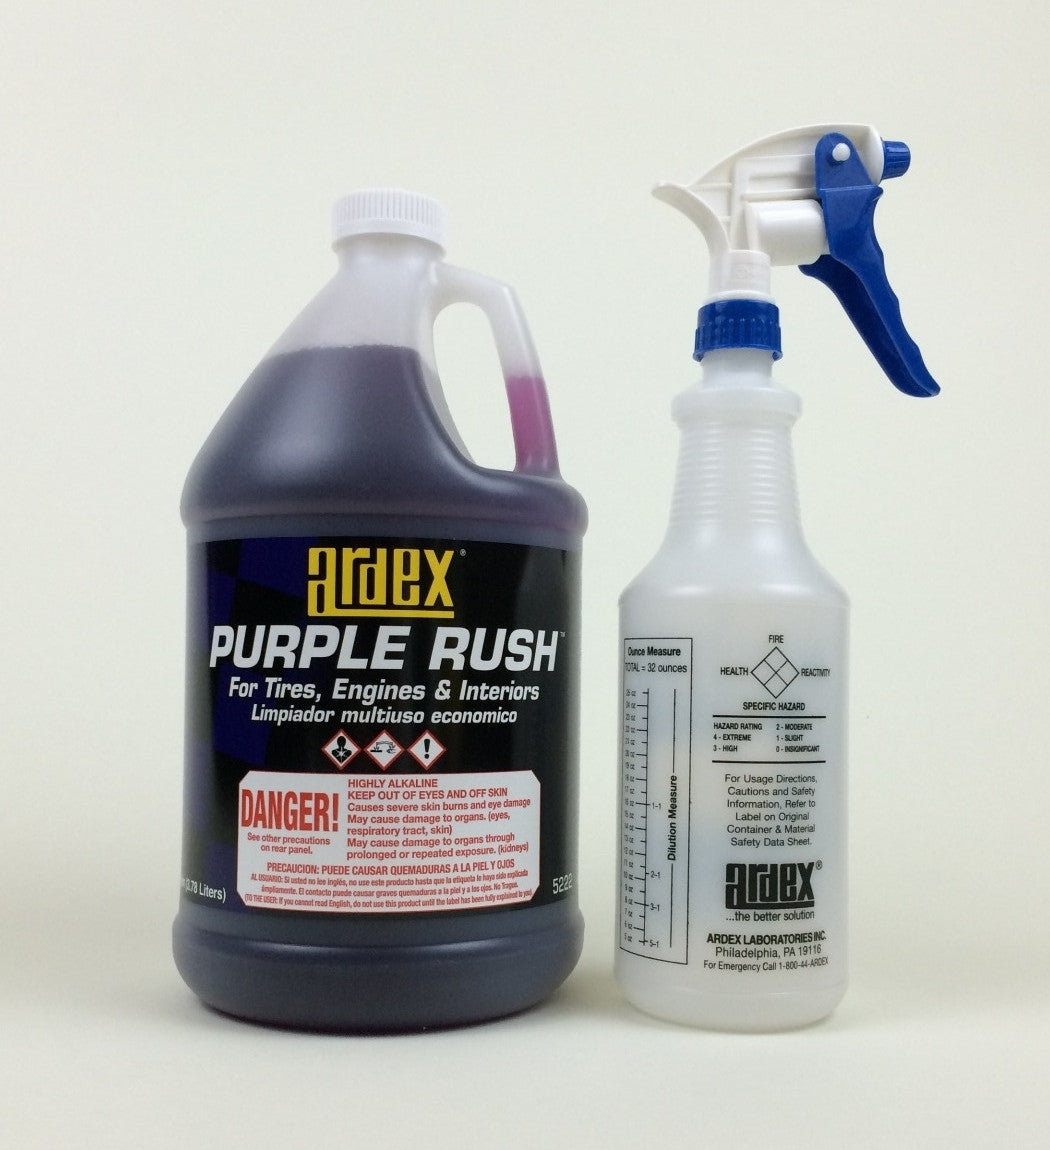 ardex purple rush 5222 heavy duty multi purpose cleaner degreaser conc ardex automotive and. Black Bedroom Furniture Sets. Home Design Ideas